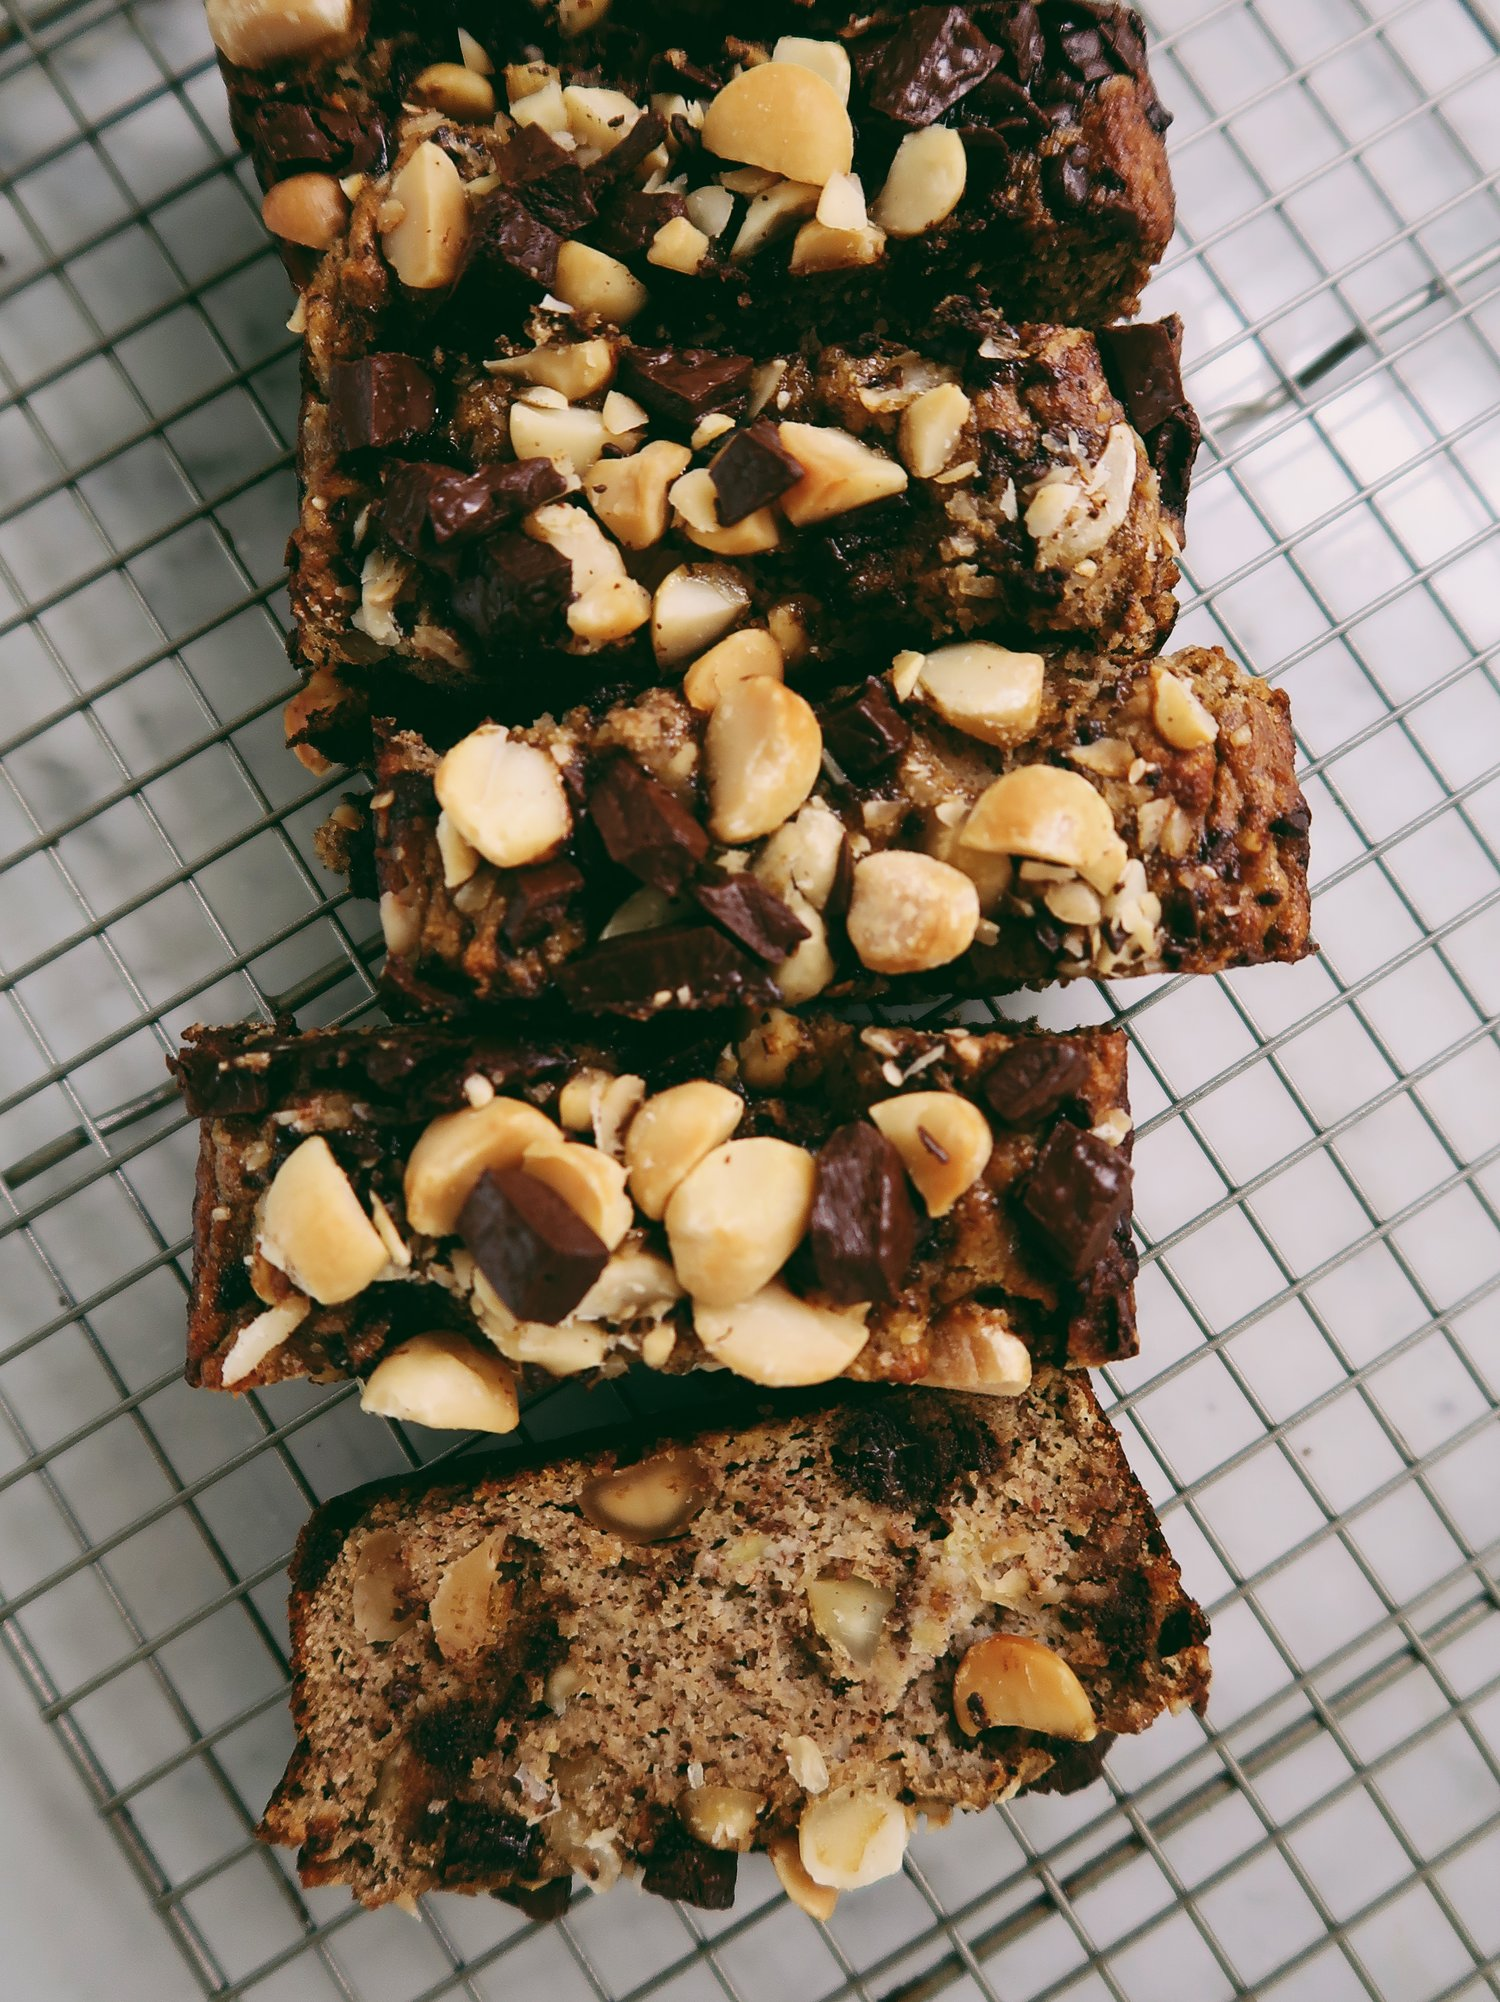 Chocolate Chunk Macadamia Banana Bread Nicole Modic